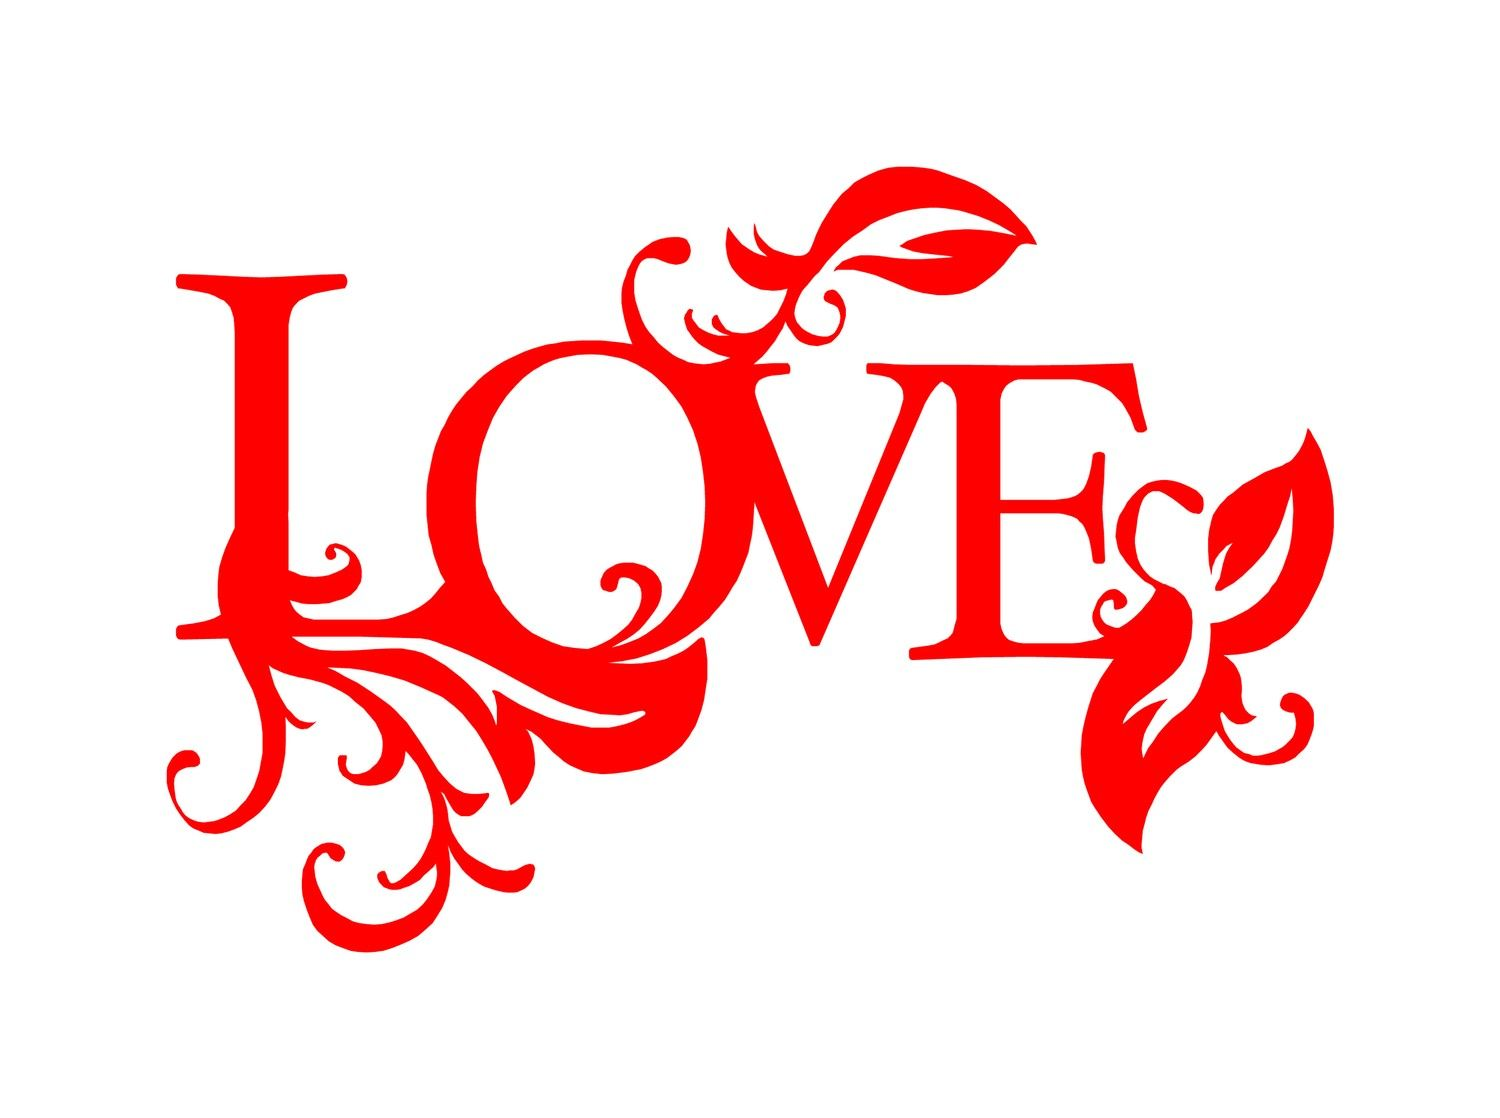 This Love Word Art Decal Is Pretty And Would Look Nice On Your Laptop